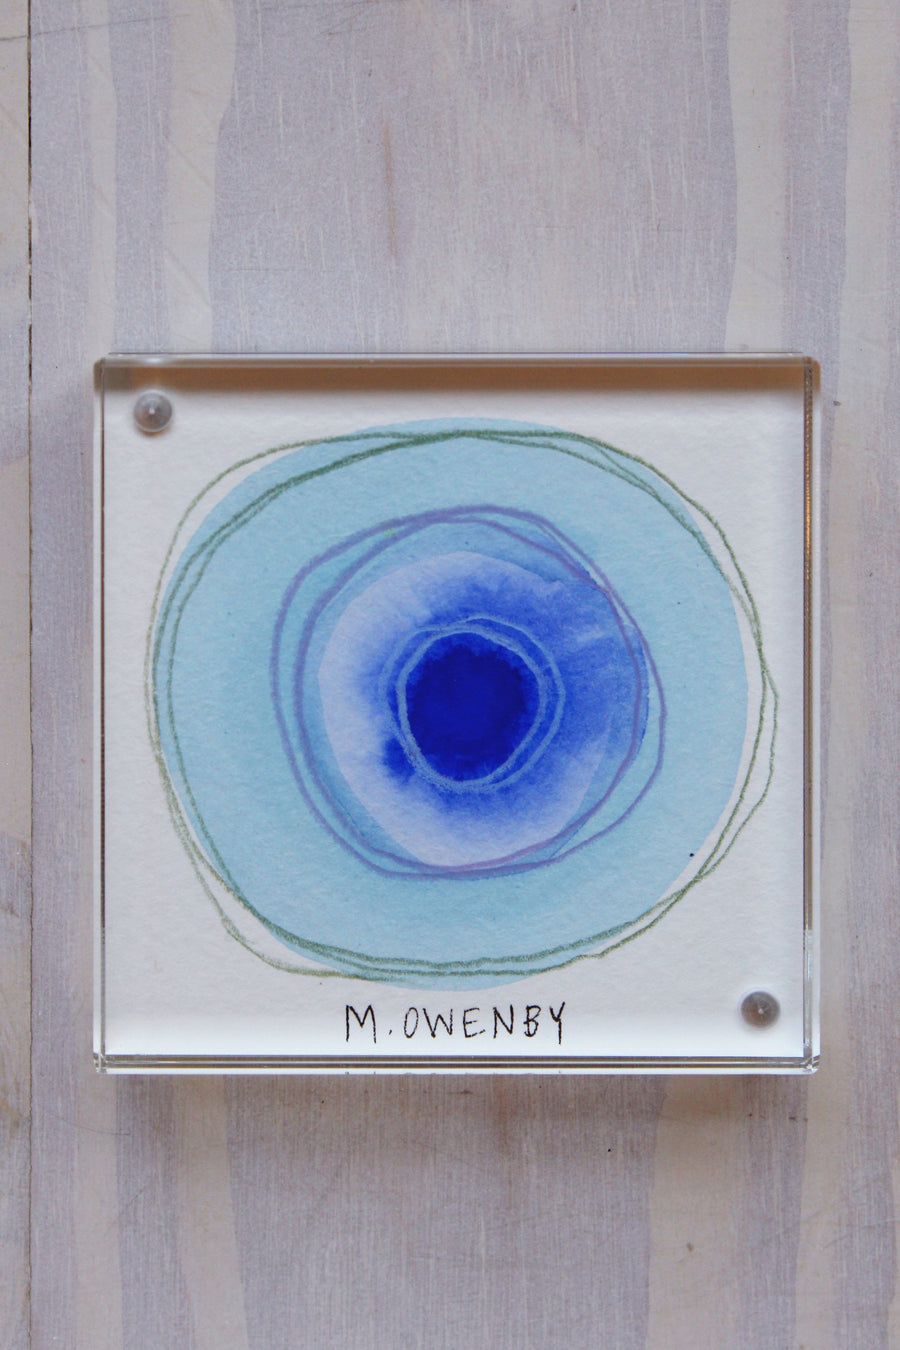 God's Eye - Ocular 38 - Michelle Owenby Design